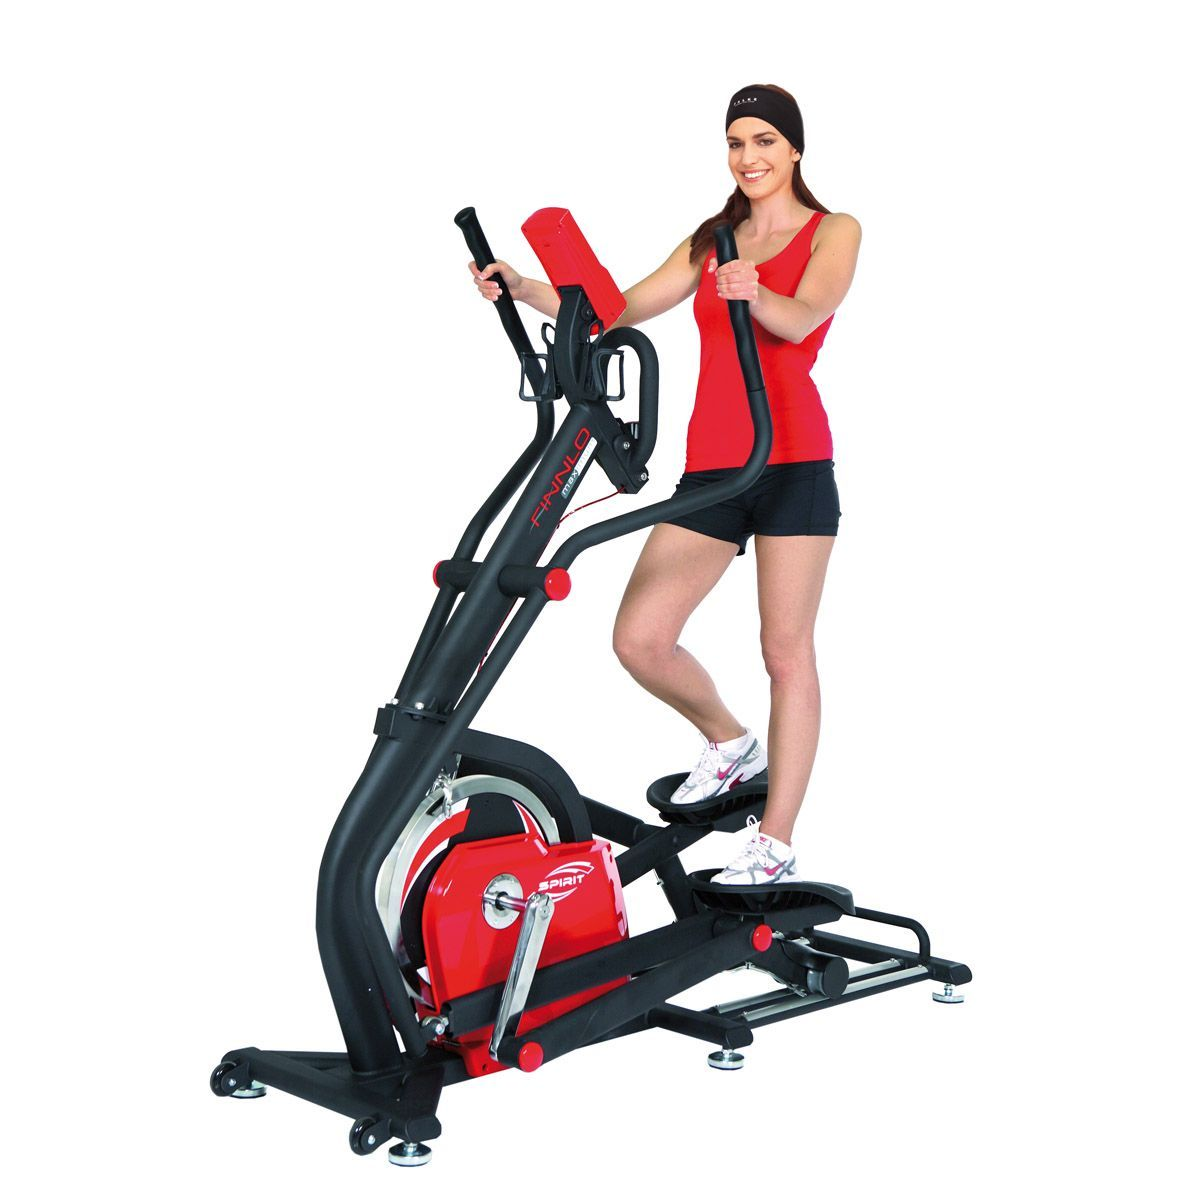 Finnlo Maximum Elliptical Spirit pr1